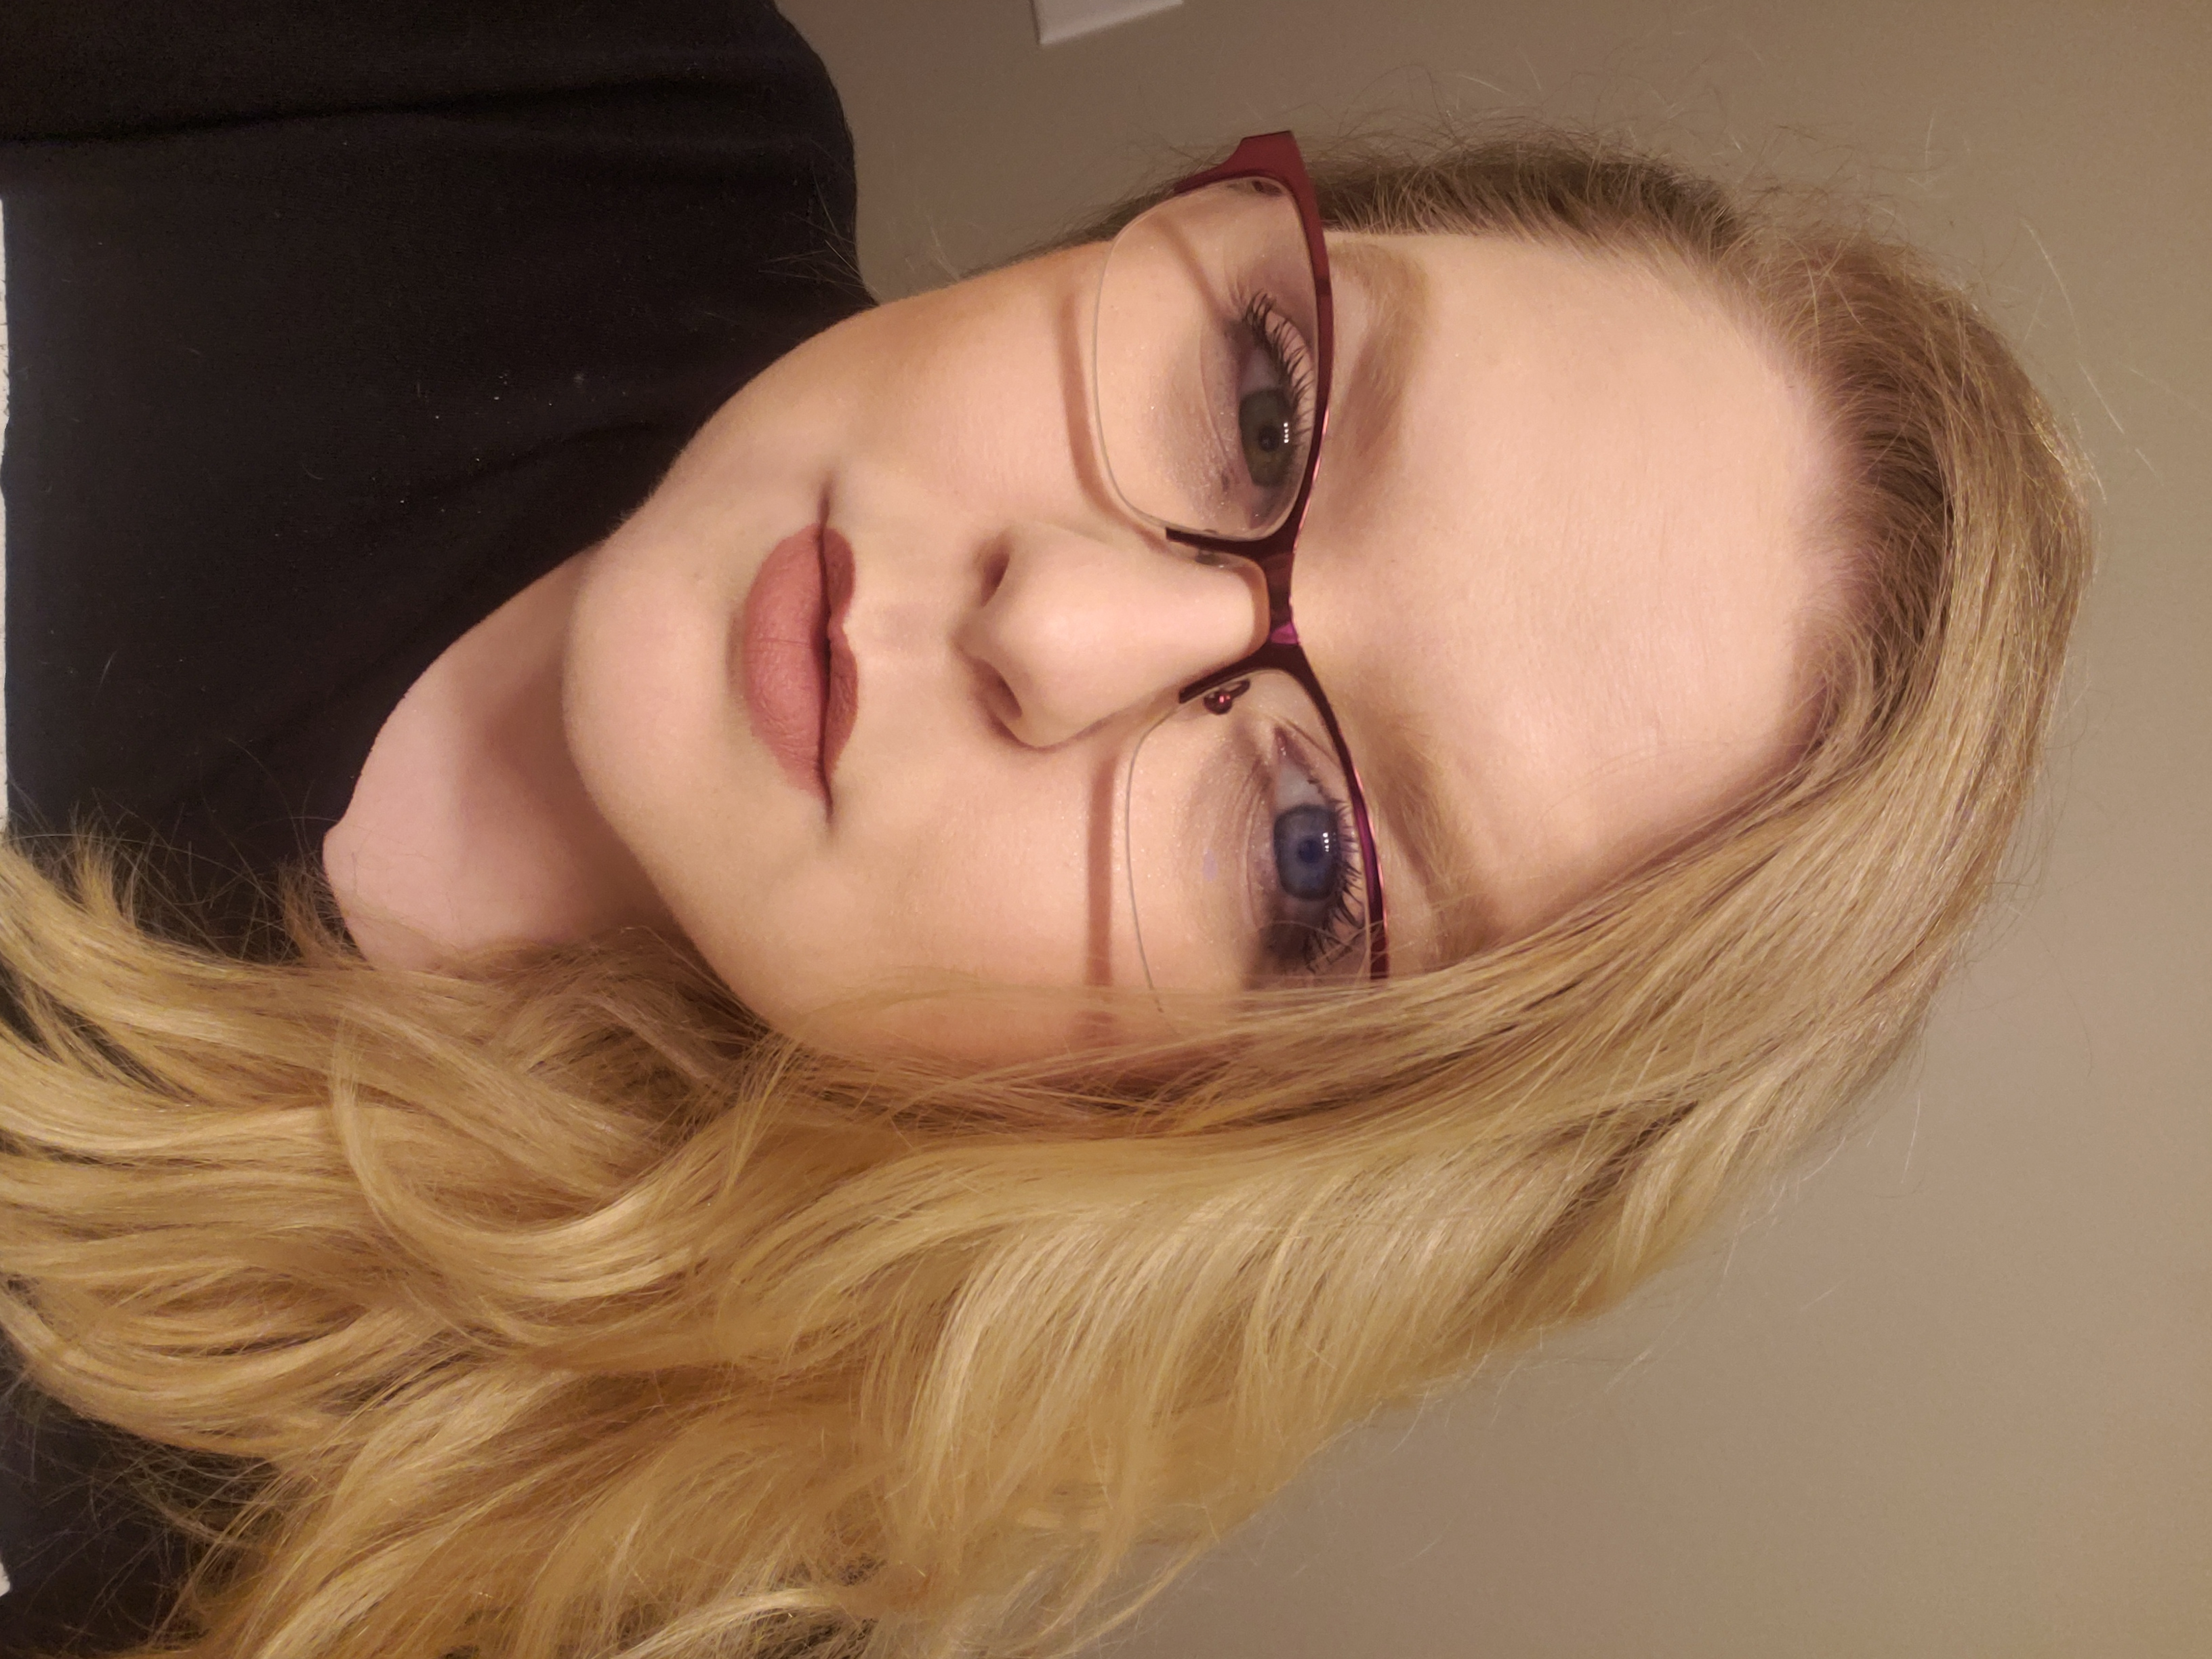 d18bbeab1f23 Year in Review